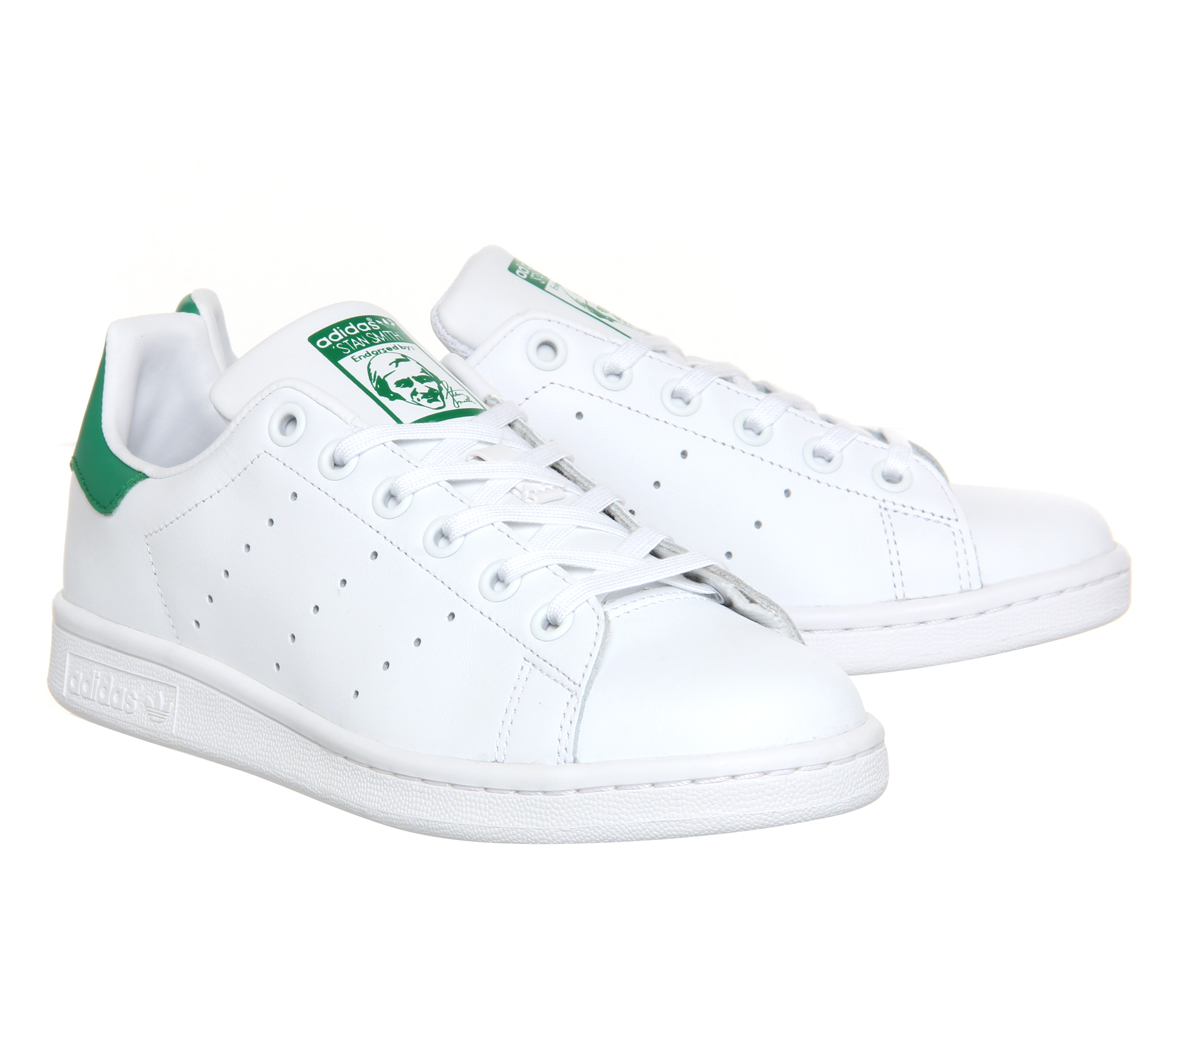 Mens-Adidas-Stan-Smith-Trainers-Core-White-Green-Trainers-Shoes thumbnail 57